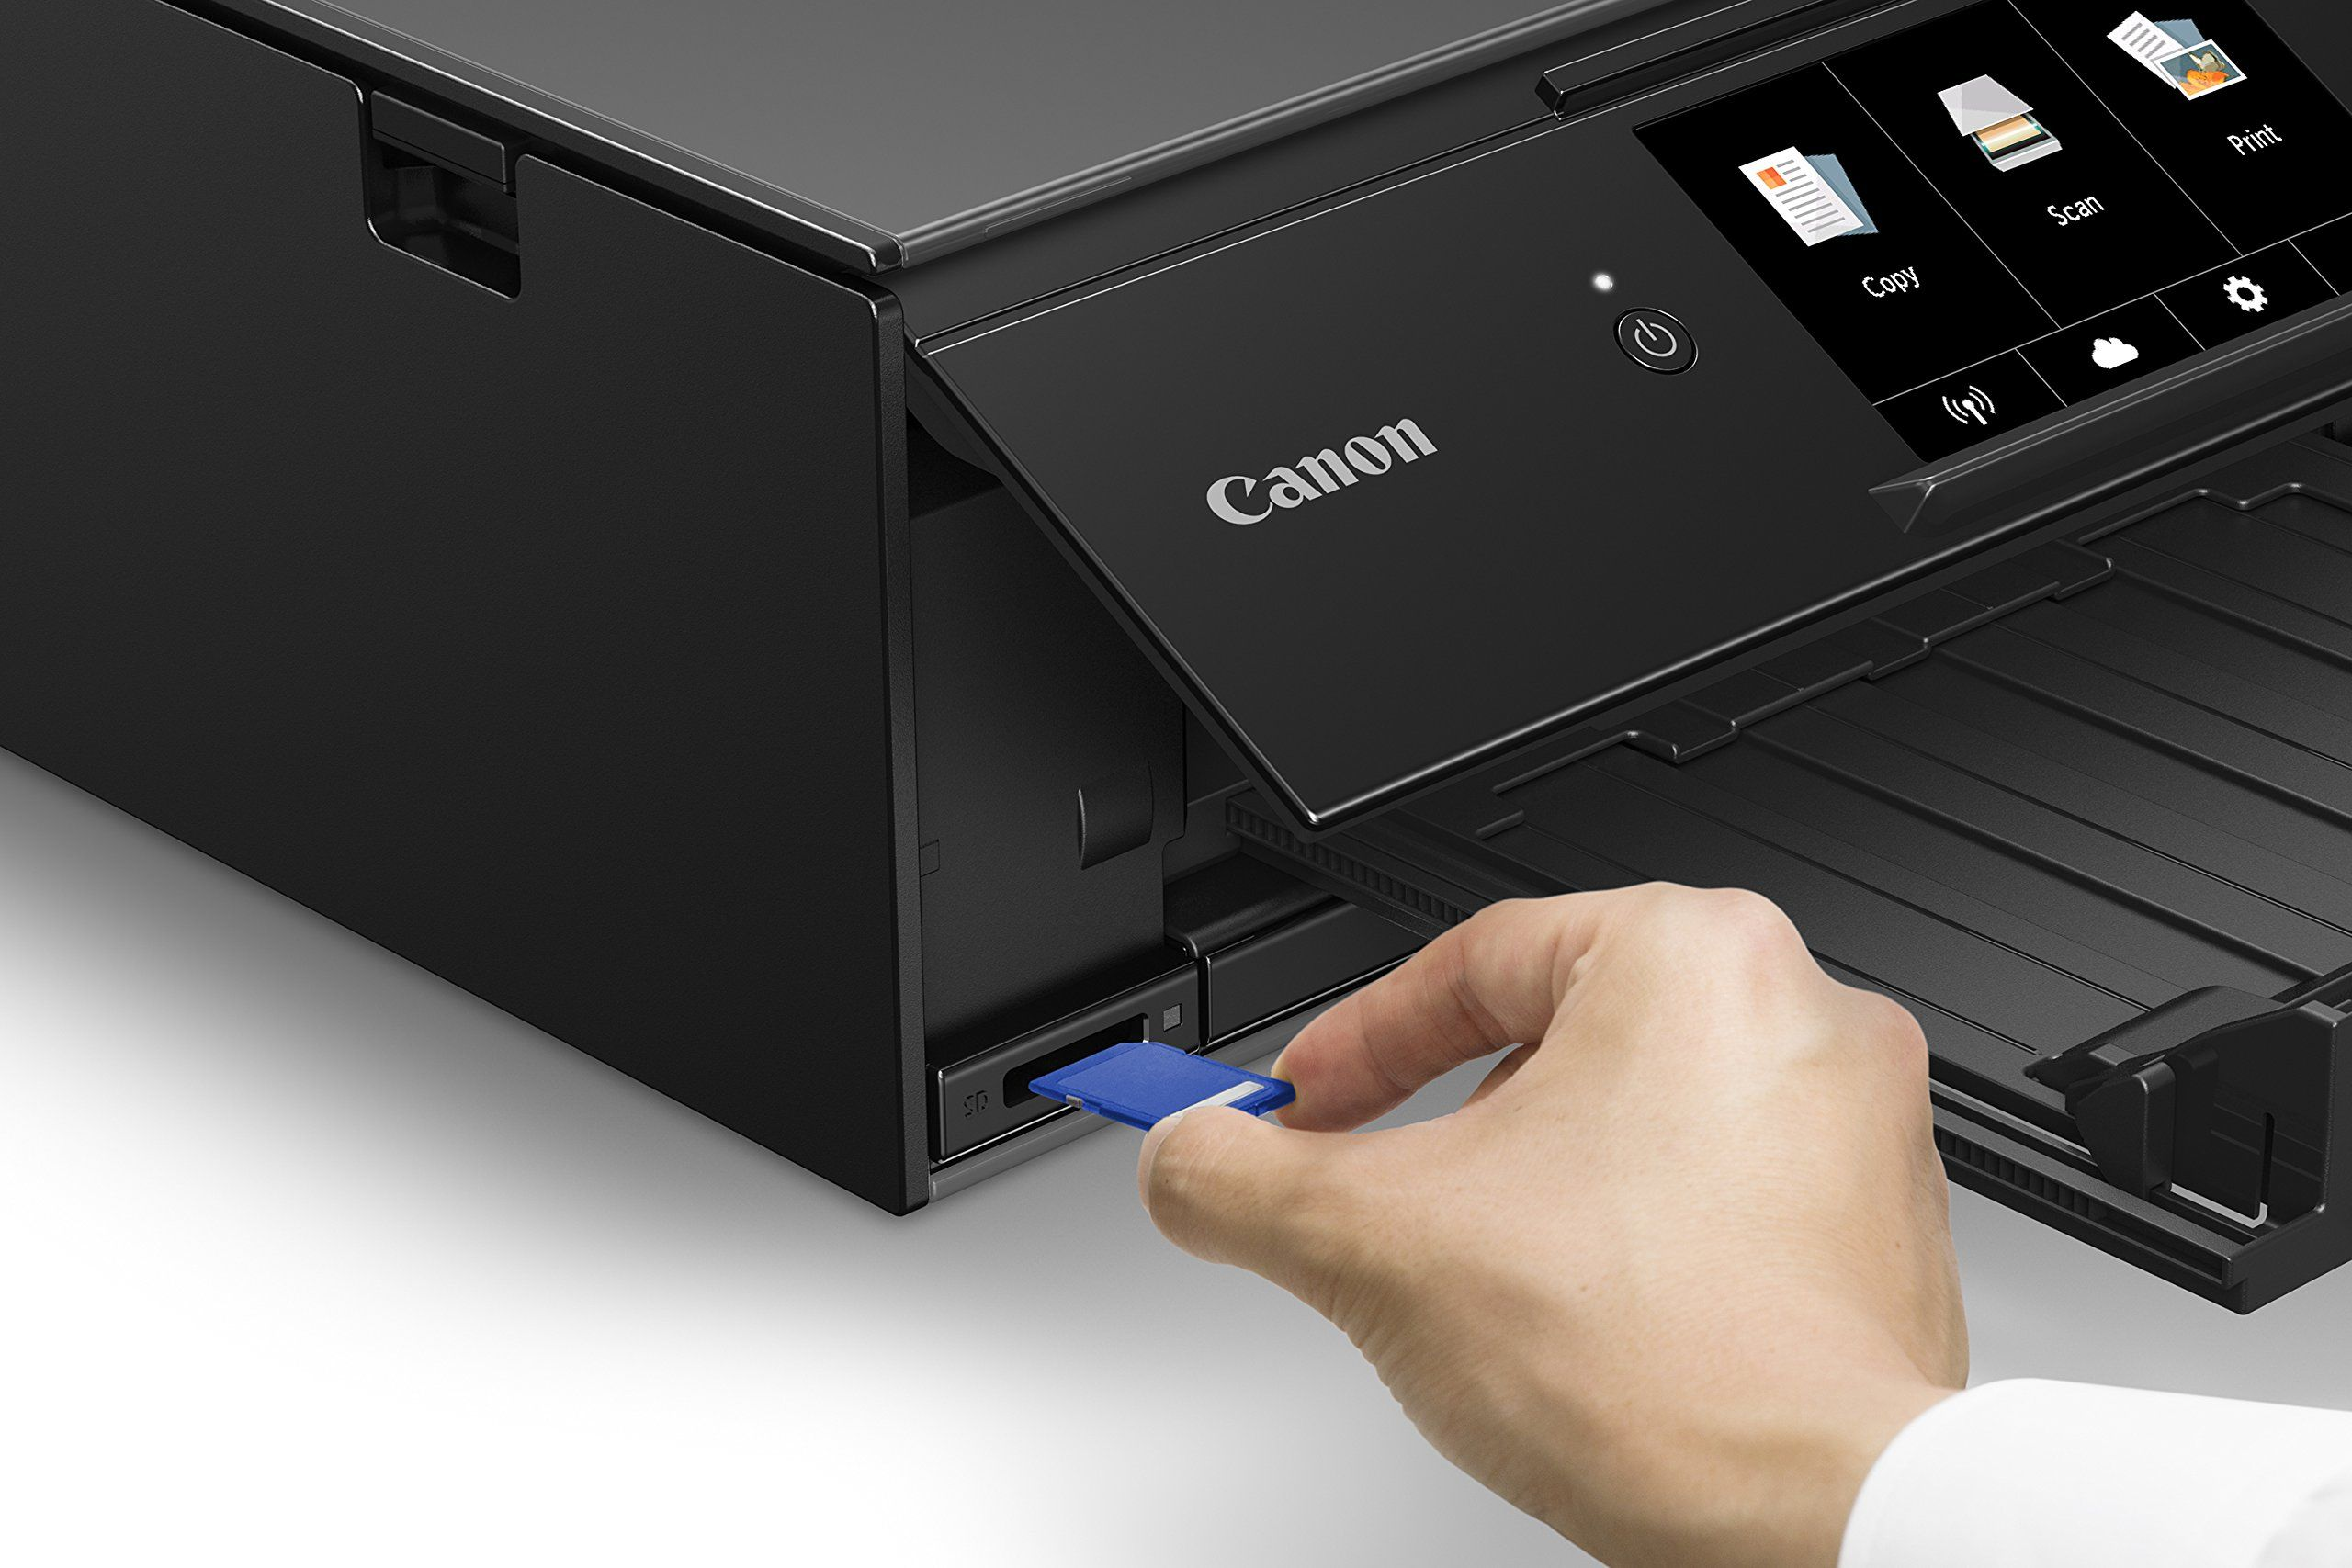 Canon TS9120 Wireless AllInOne Printer with Scanner and